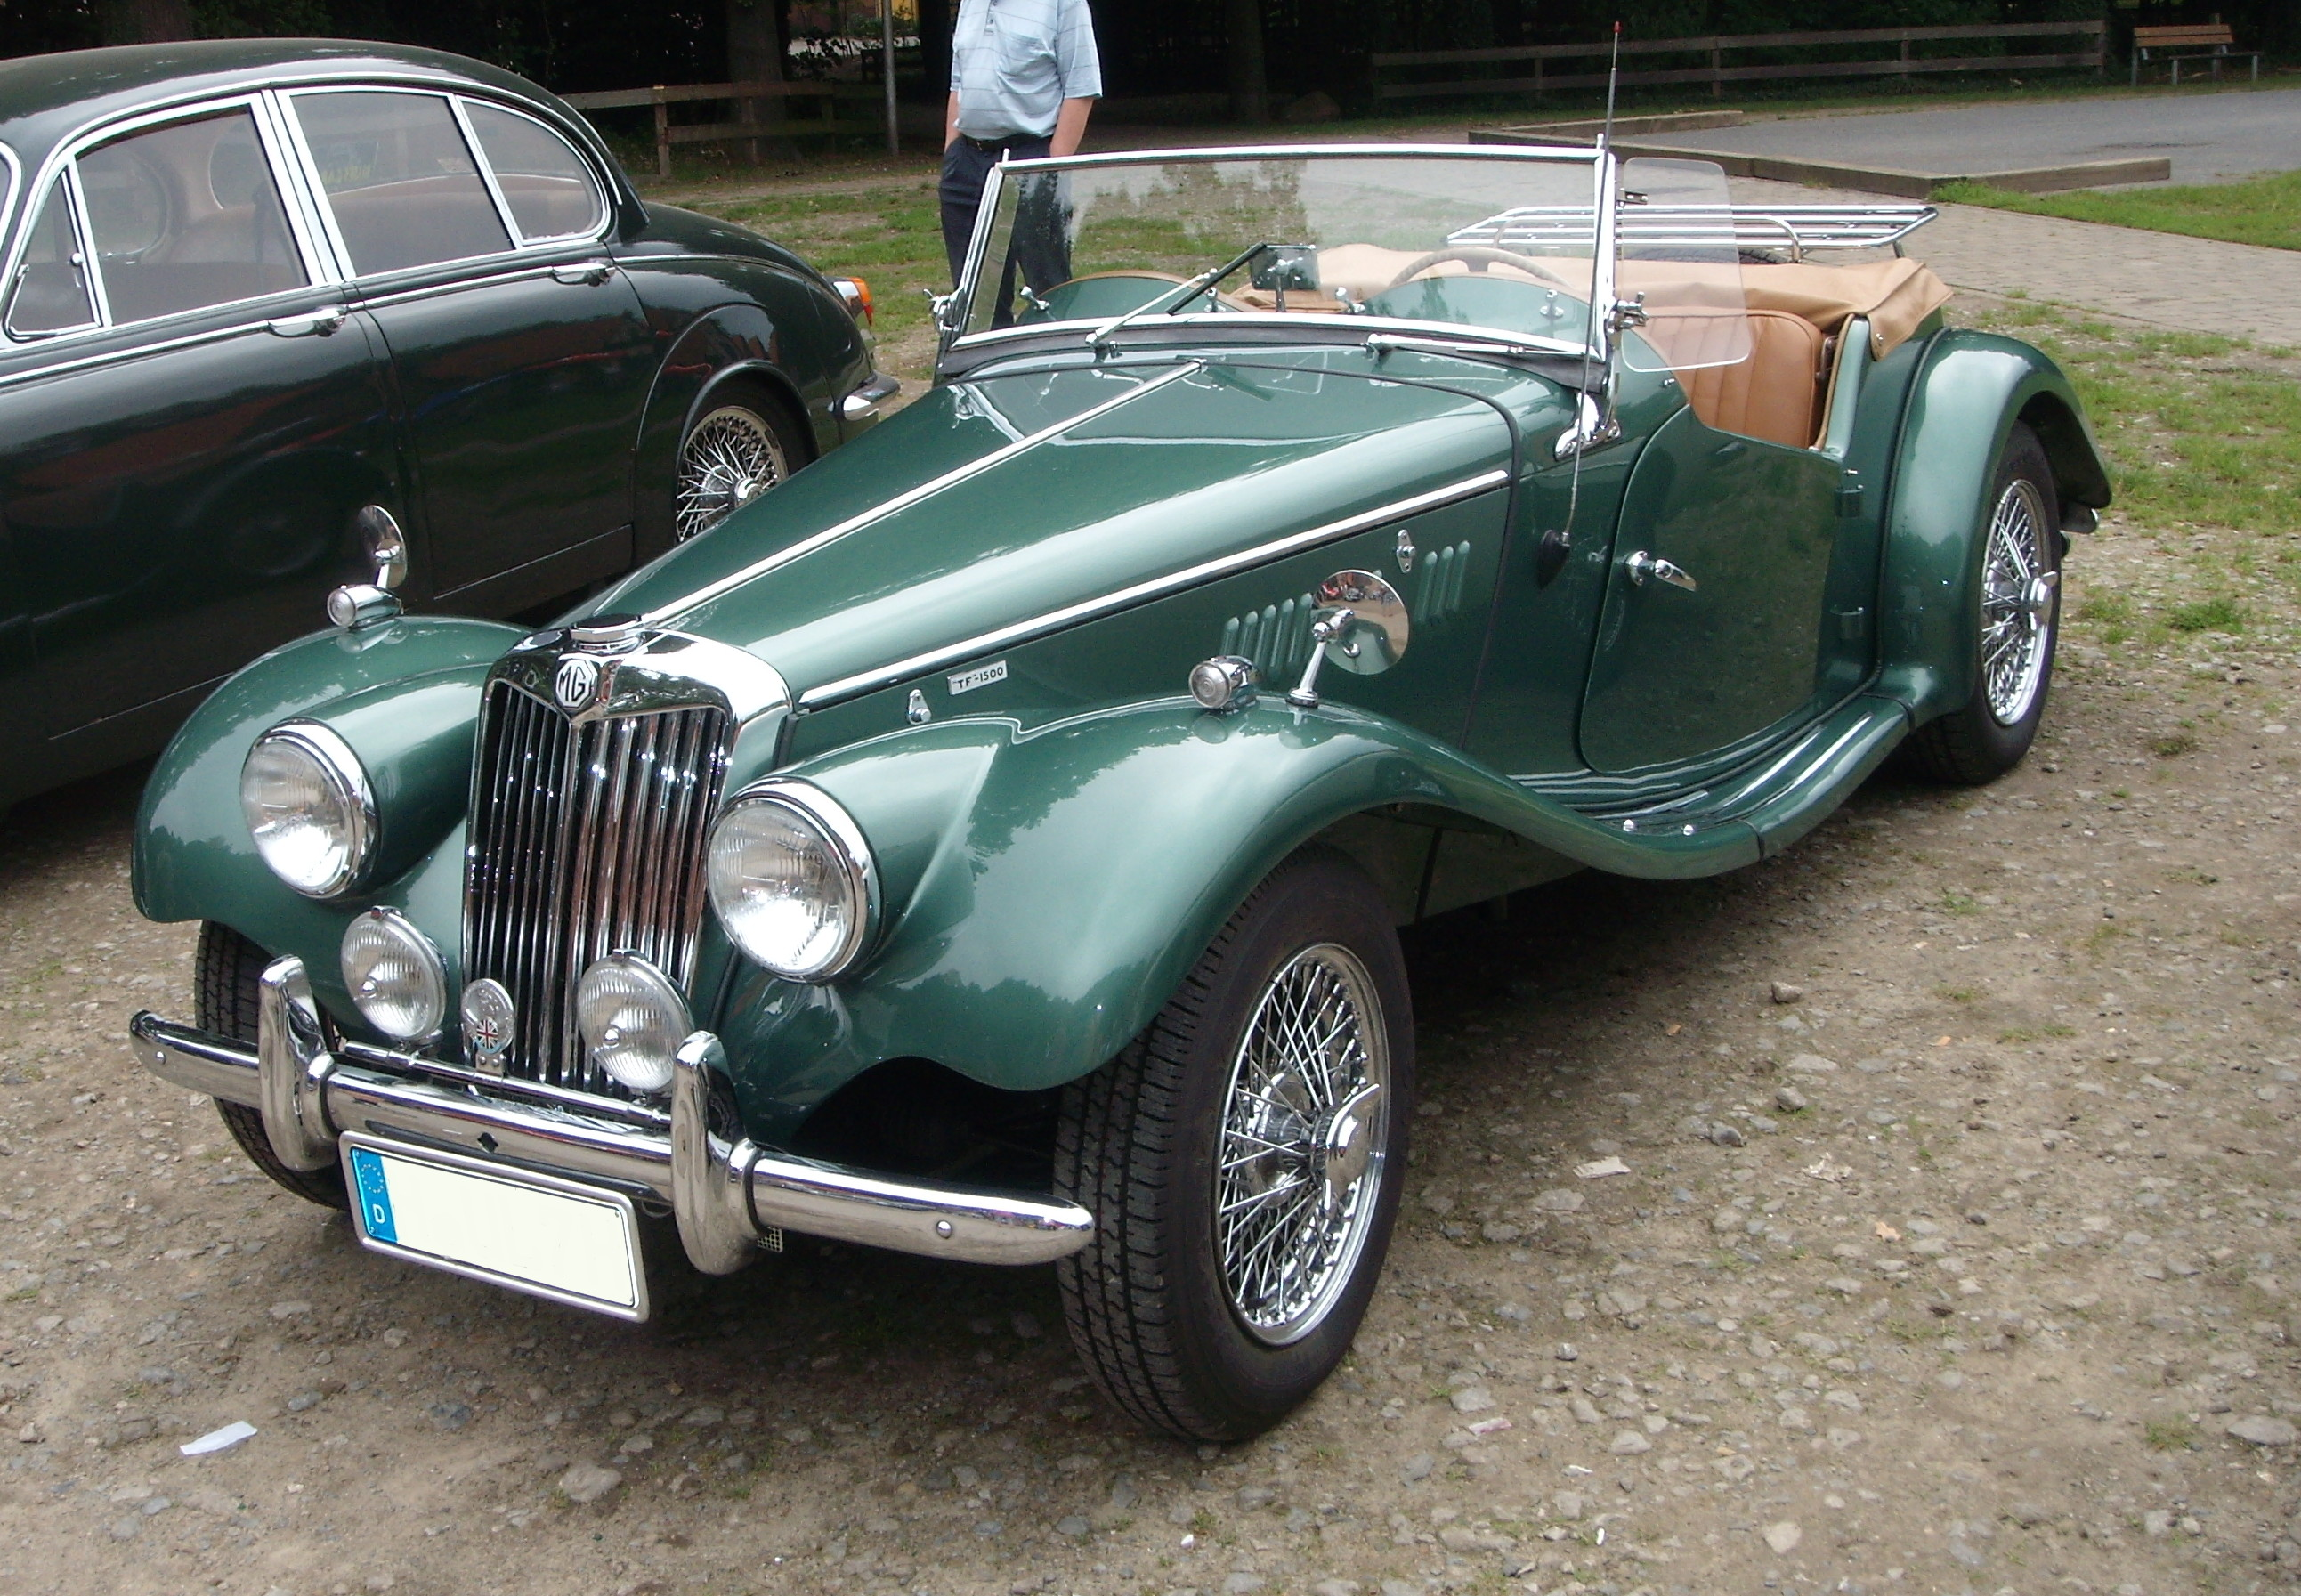 Another fun look at an mg sportscar cars pinterest cars another fun look at an mg sportscar cars pinterest cars sports cars and british car vanachro Images